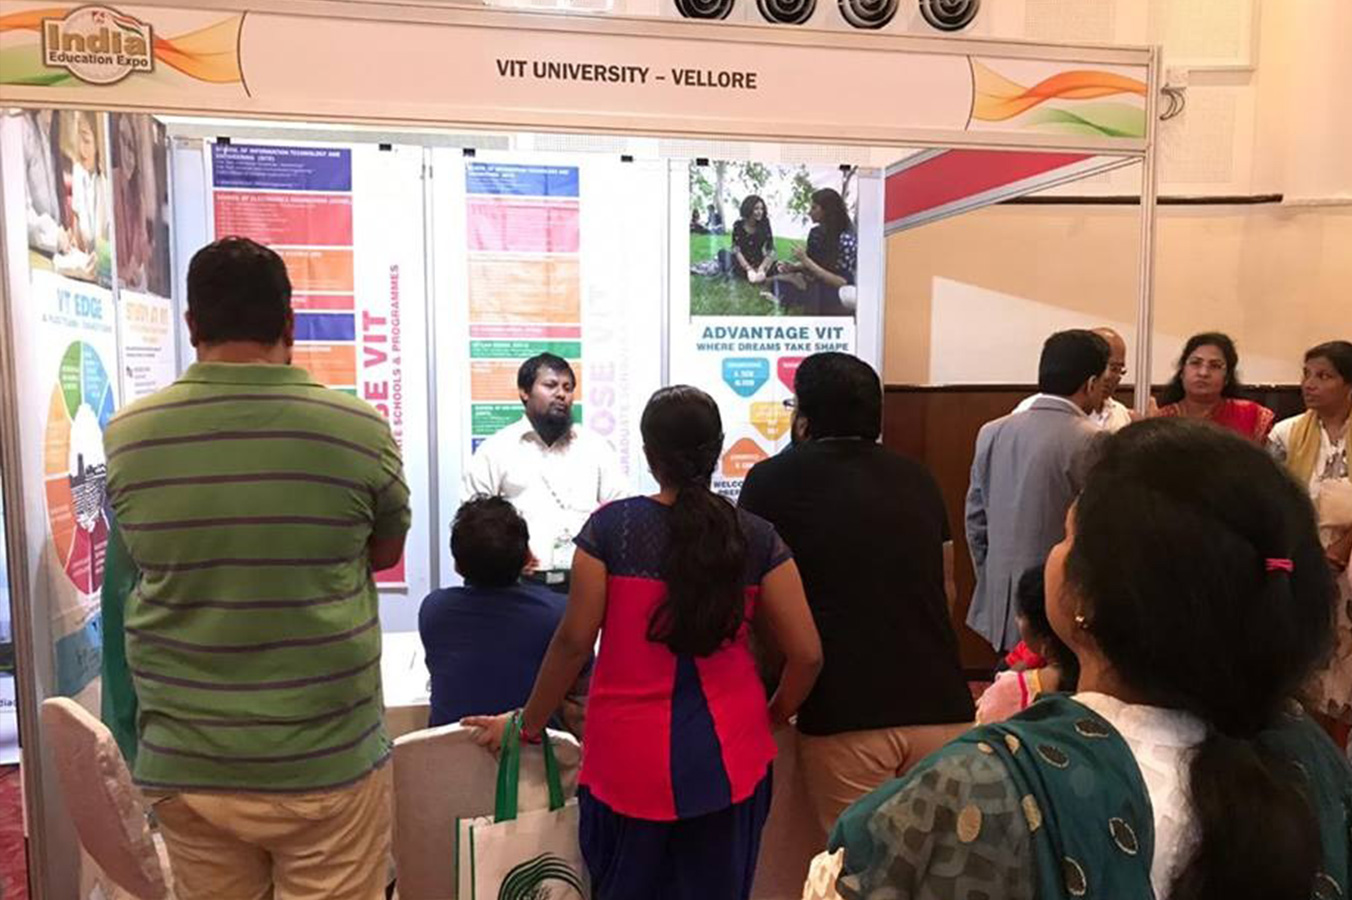 India Education Expo - Muscat